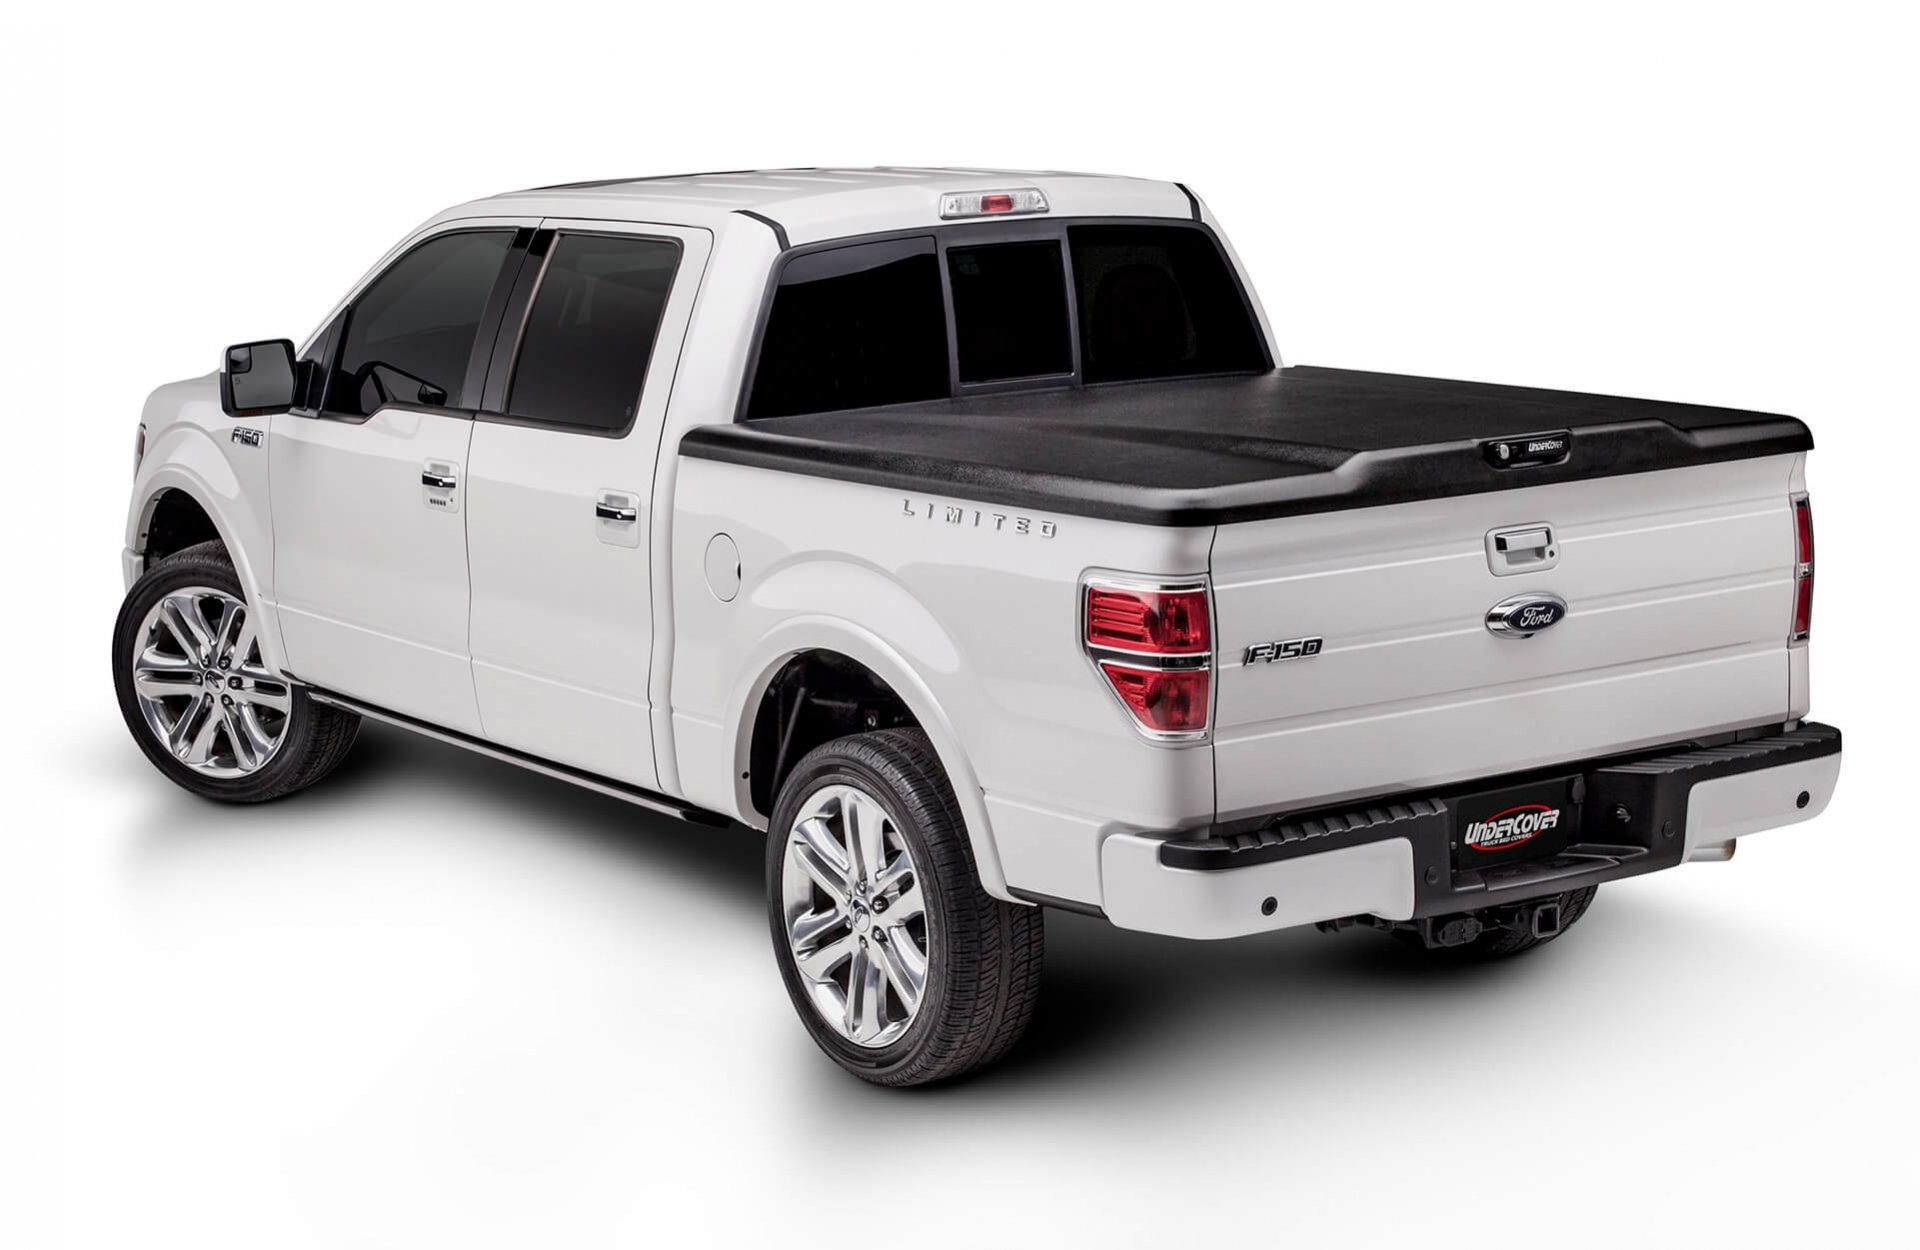 UnderCover Bed Storage? - Ford F150 Forum - Community of